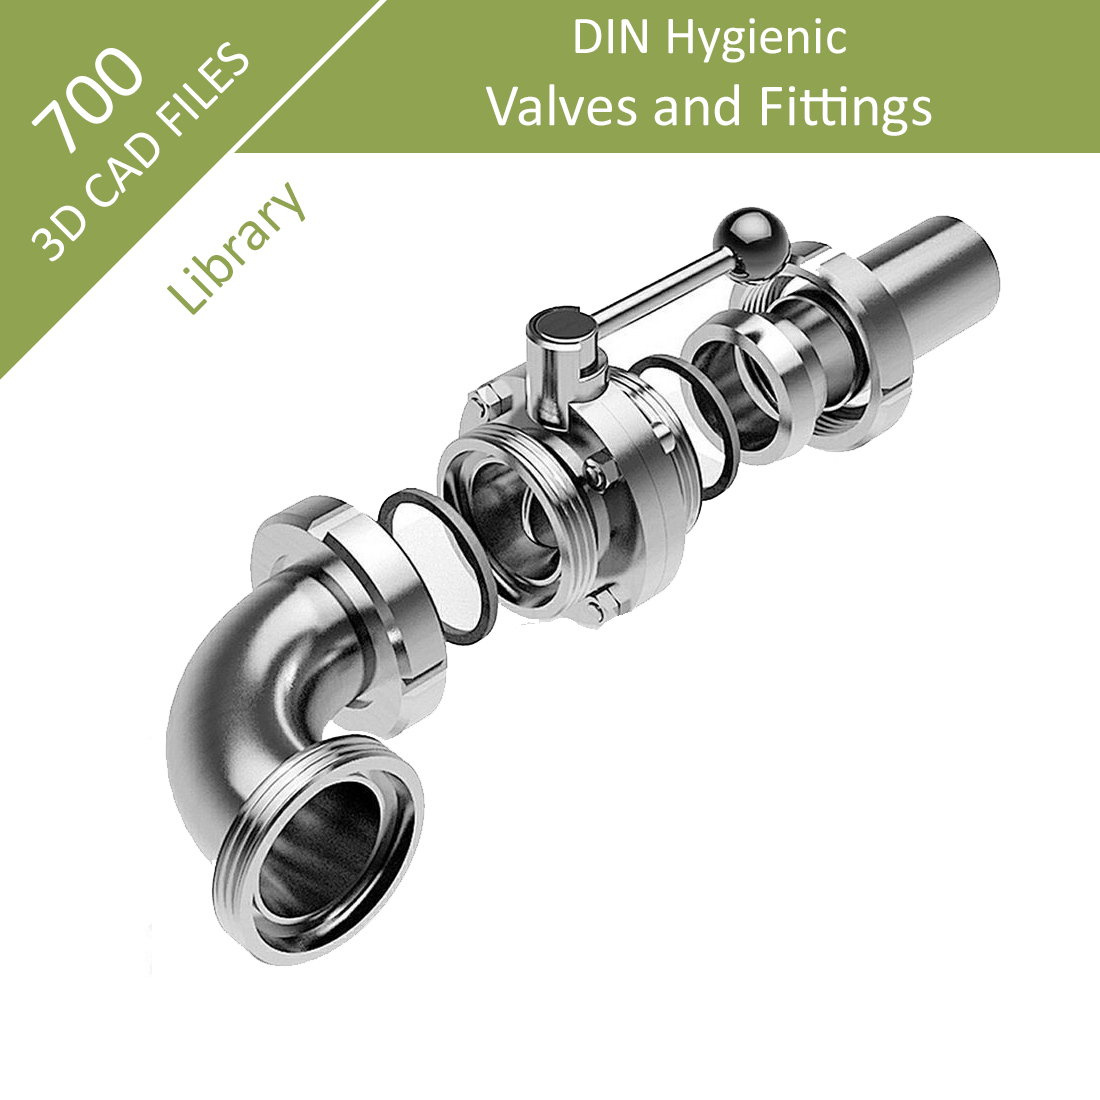 DIN_Food_Pharma_fittings_valves_3D_CAD_library_file_download_-_1B